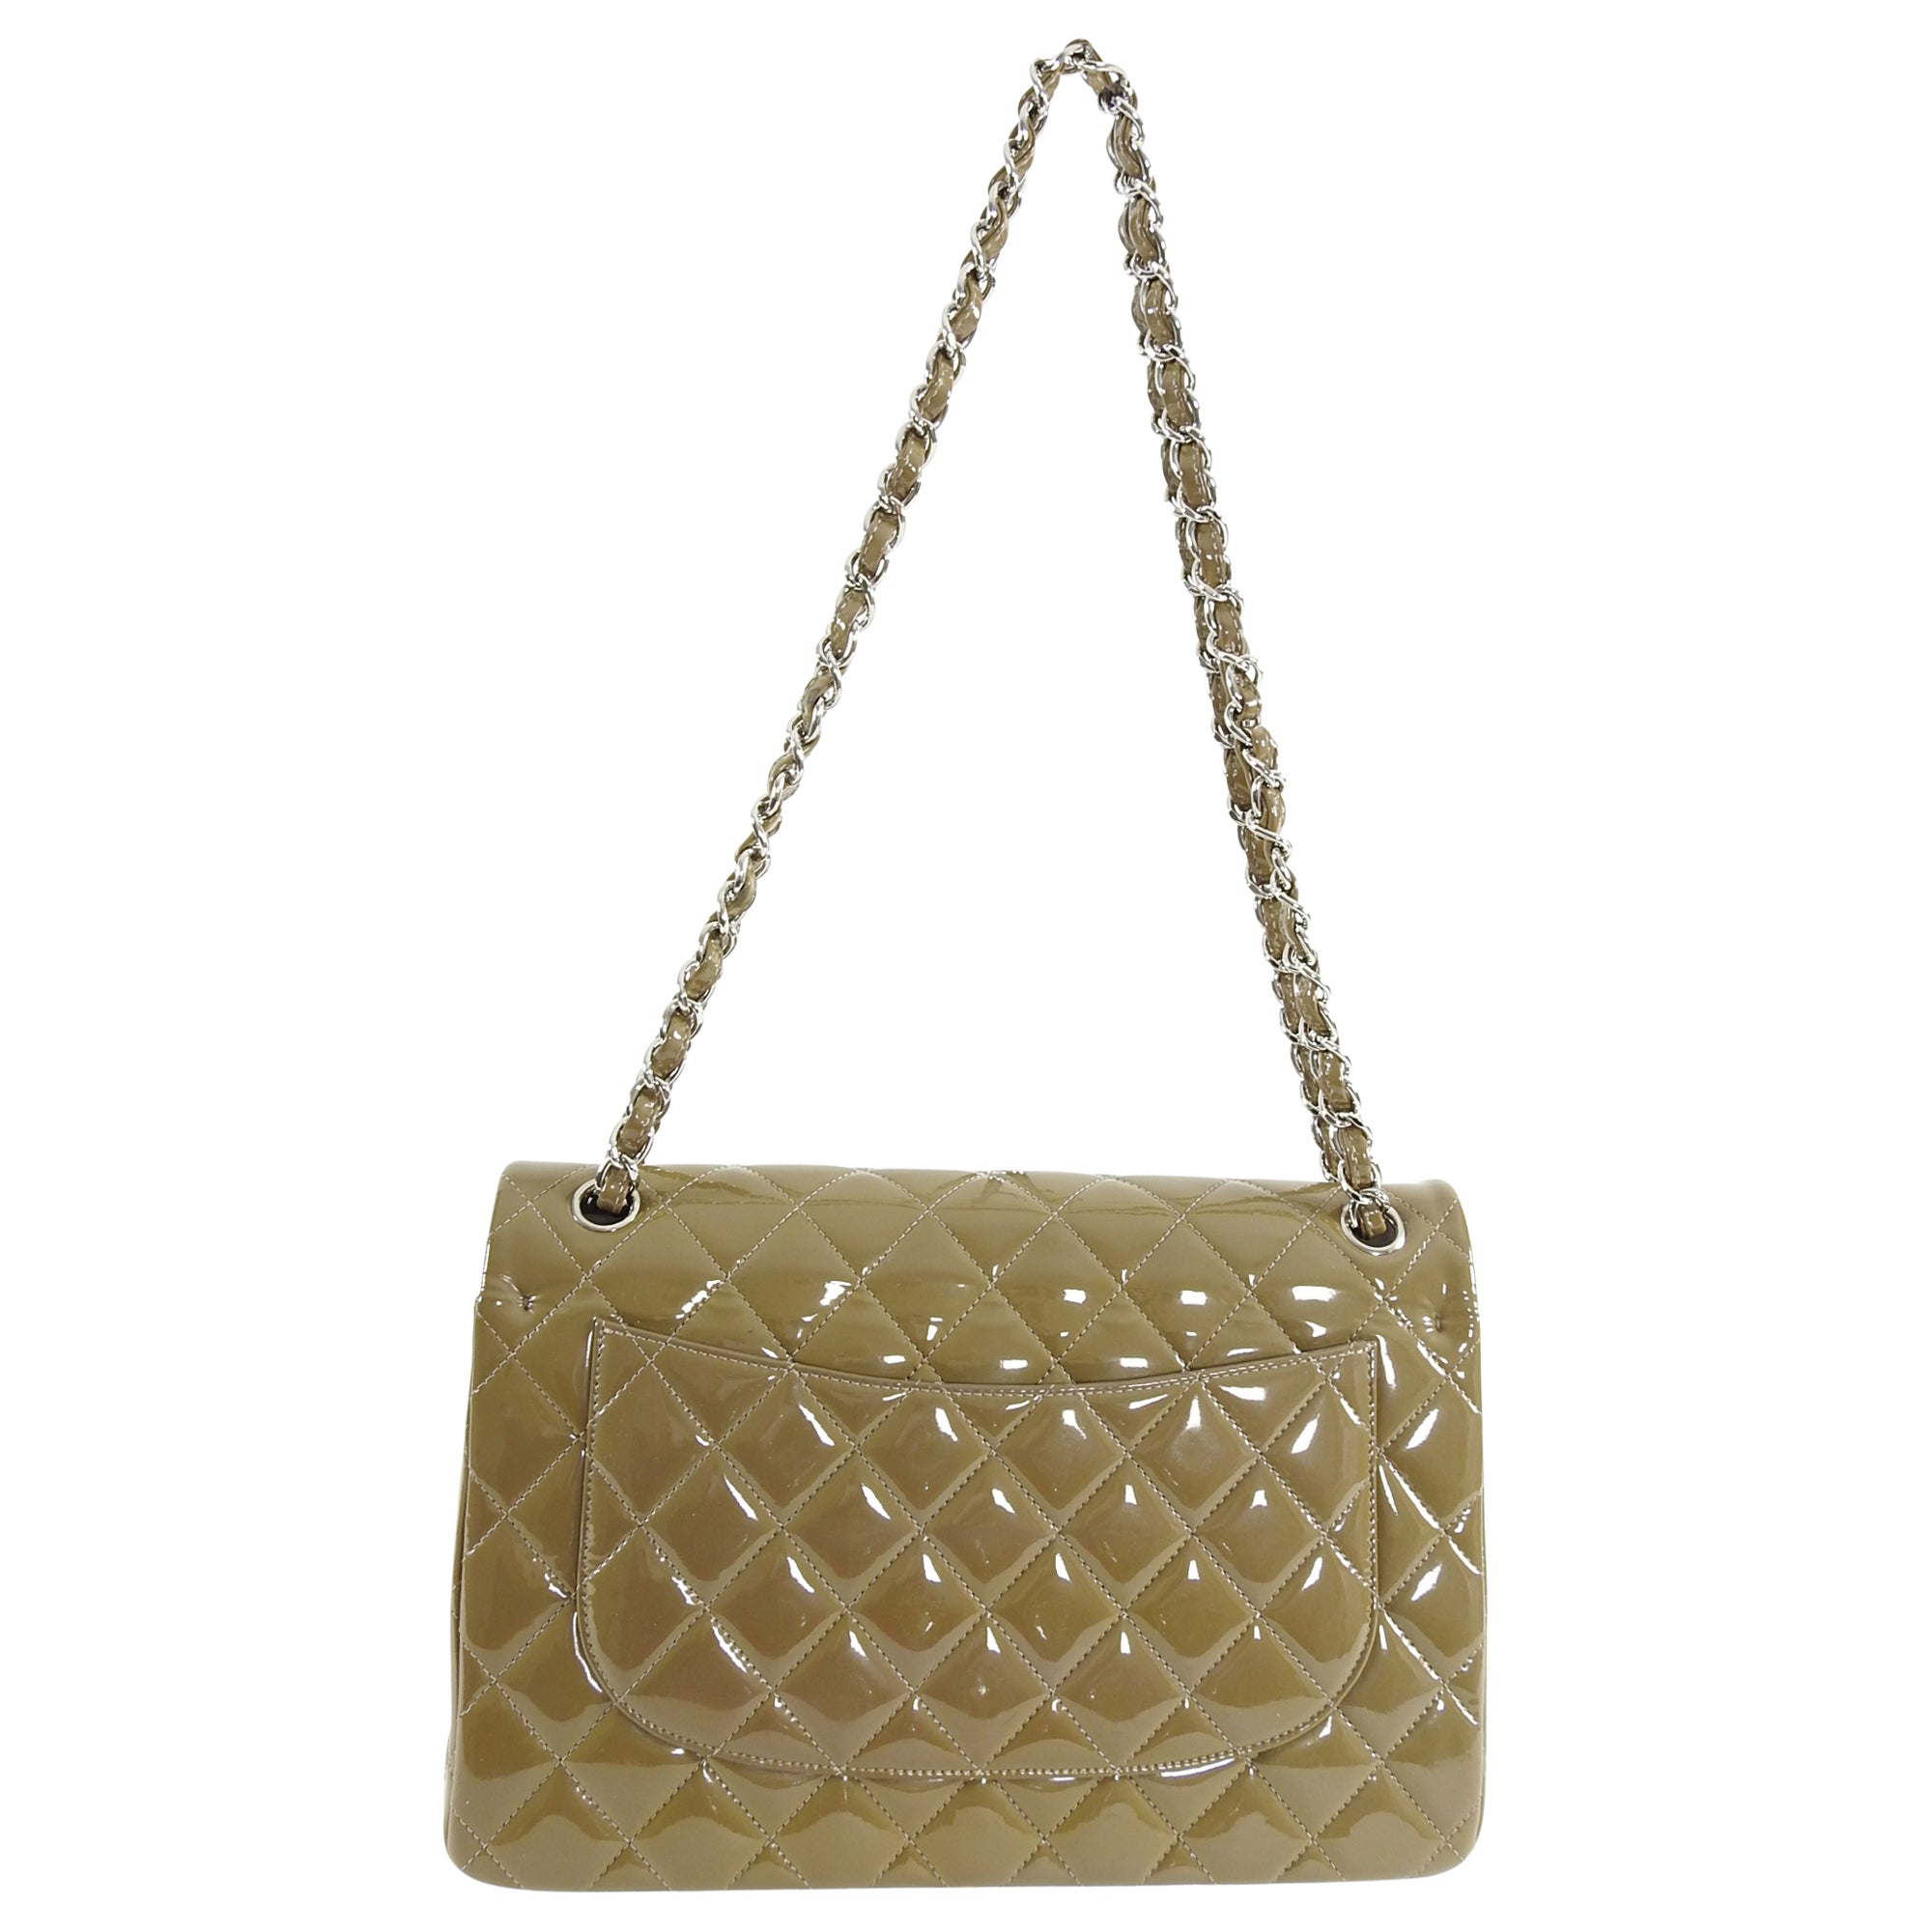 f58162e122d8 Chanel Gris Fonce Patent Leather Quilt Jumbo Double Flap Bag Silver  Hardware at 1stdibs